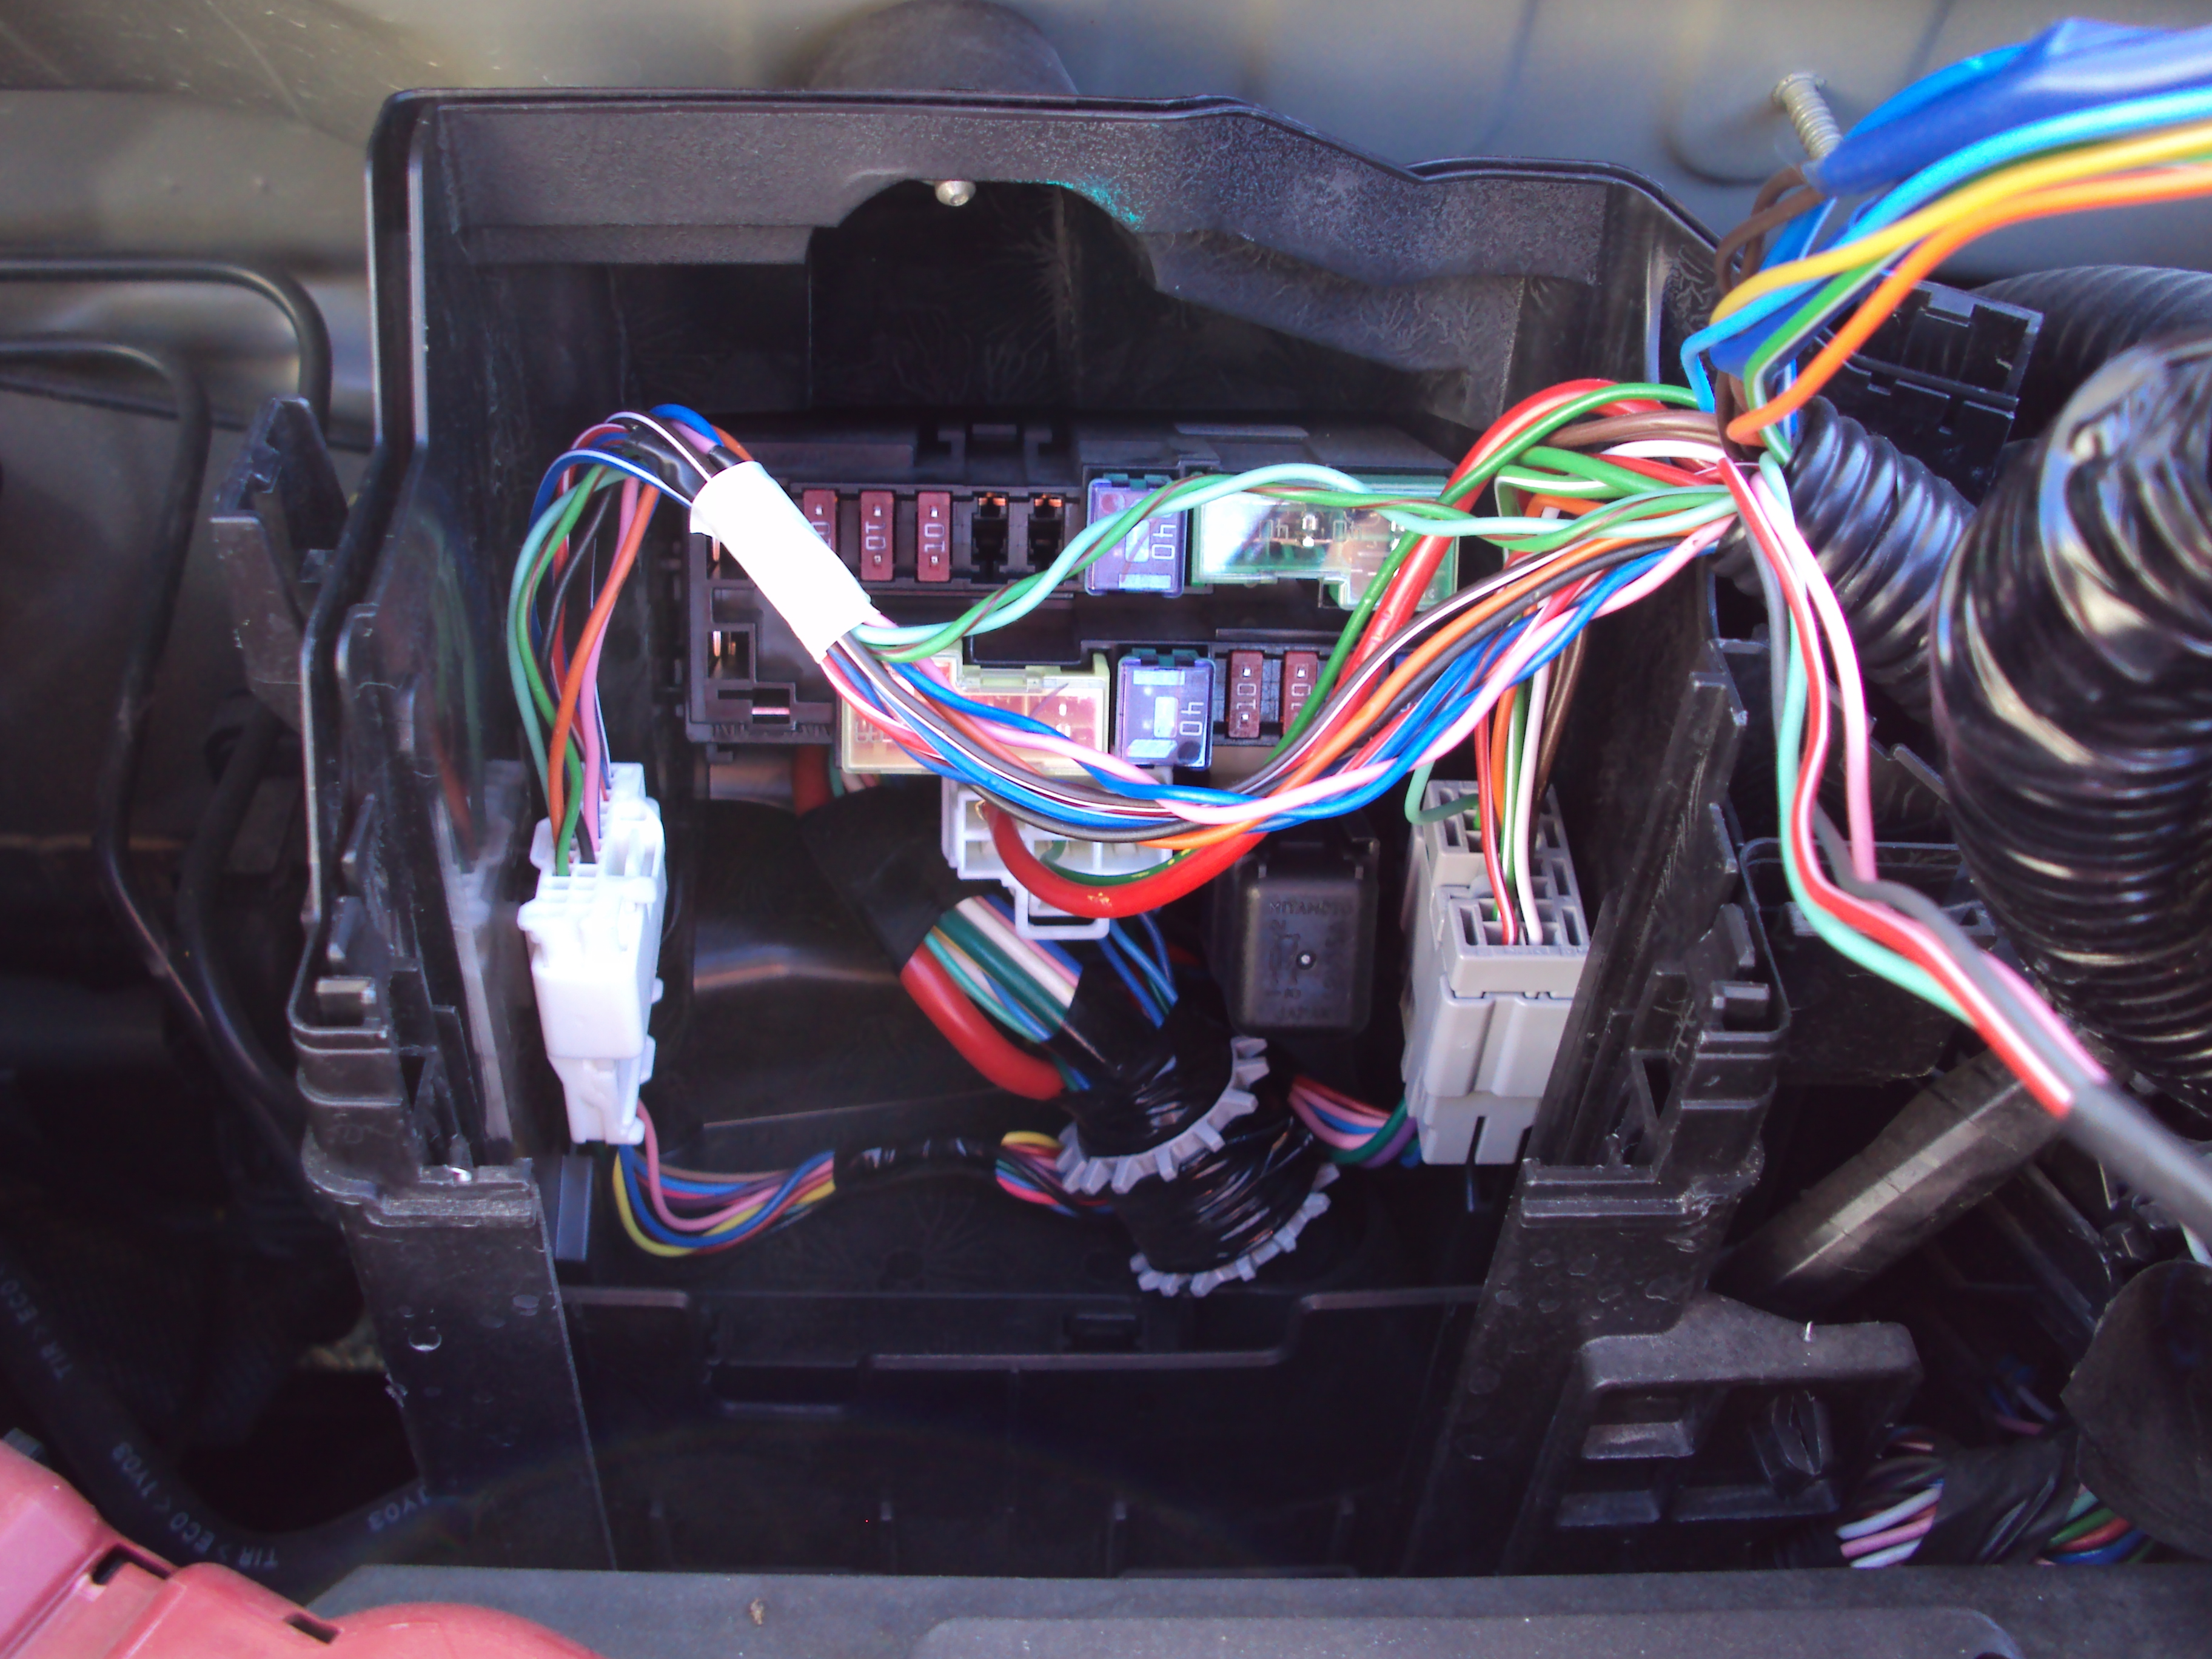 Guide To Find All The Fuses Interior Fuse Box And Engine Bay Nissan Kubistar Location 7 Detailed View Of That Holds Mobile Block